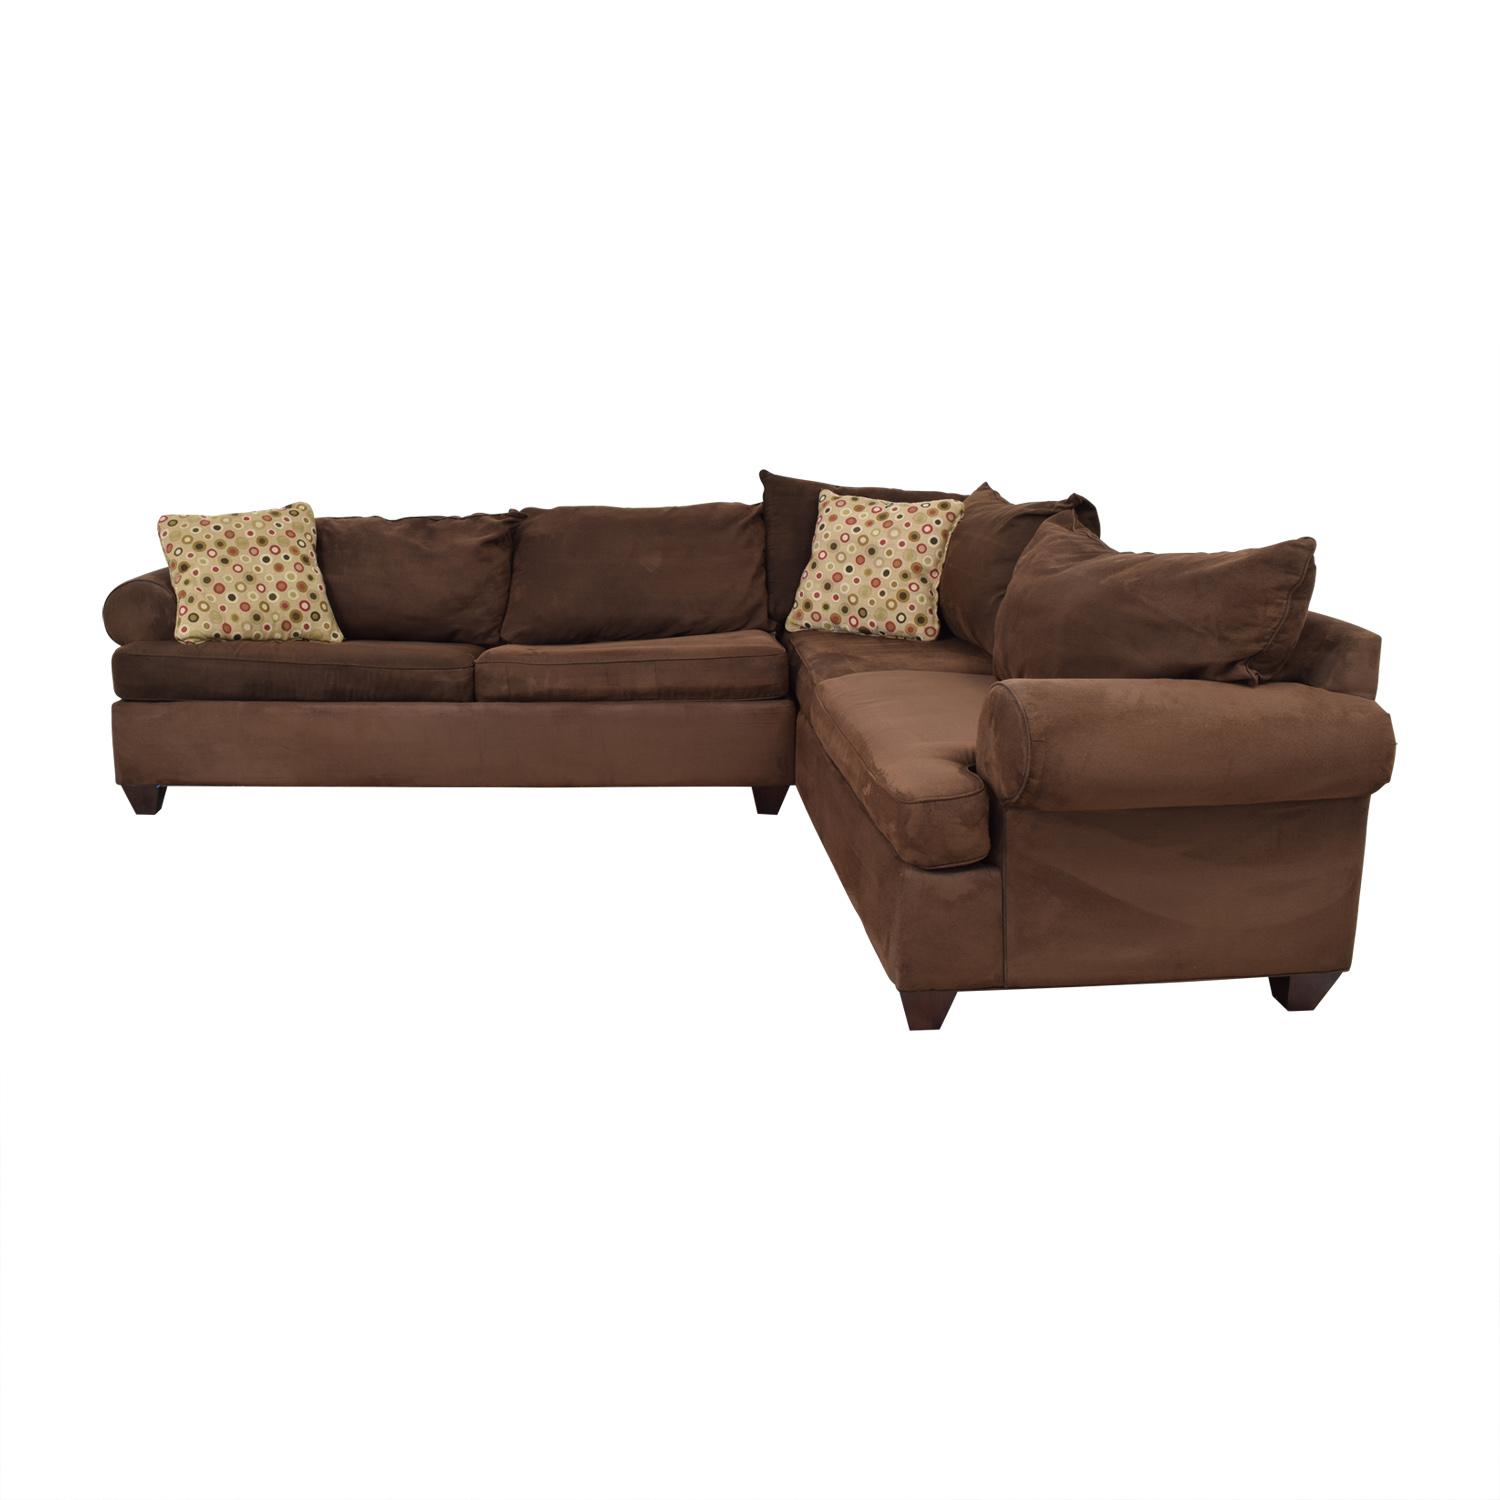 Sofa Sectionals With Bed 76 Off Raymour Flanigan Raymour Flanigan Brown L Shaped